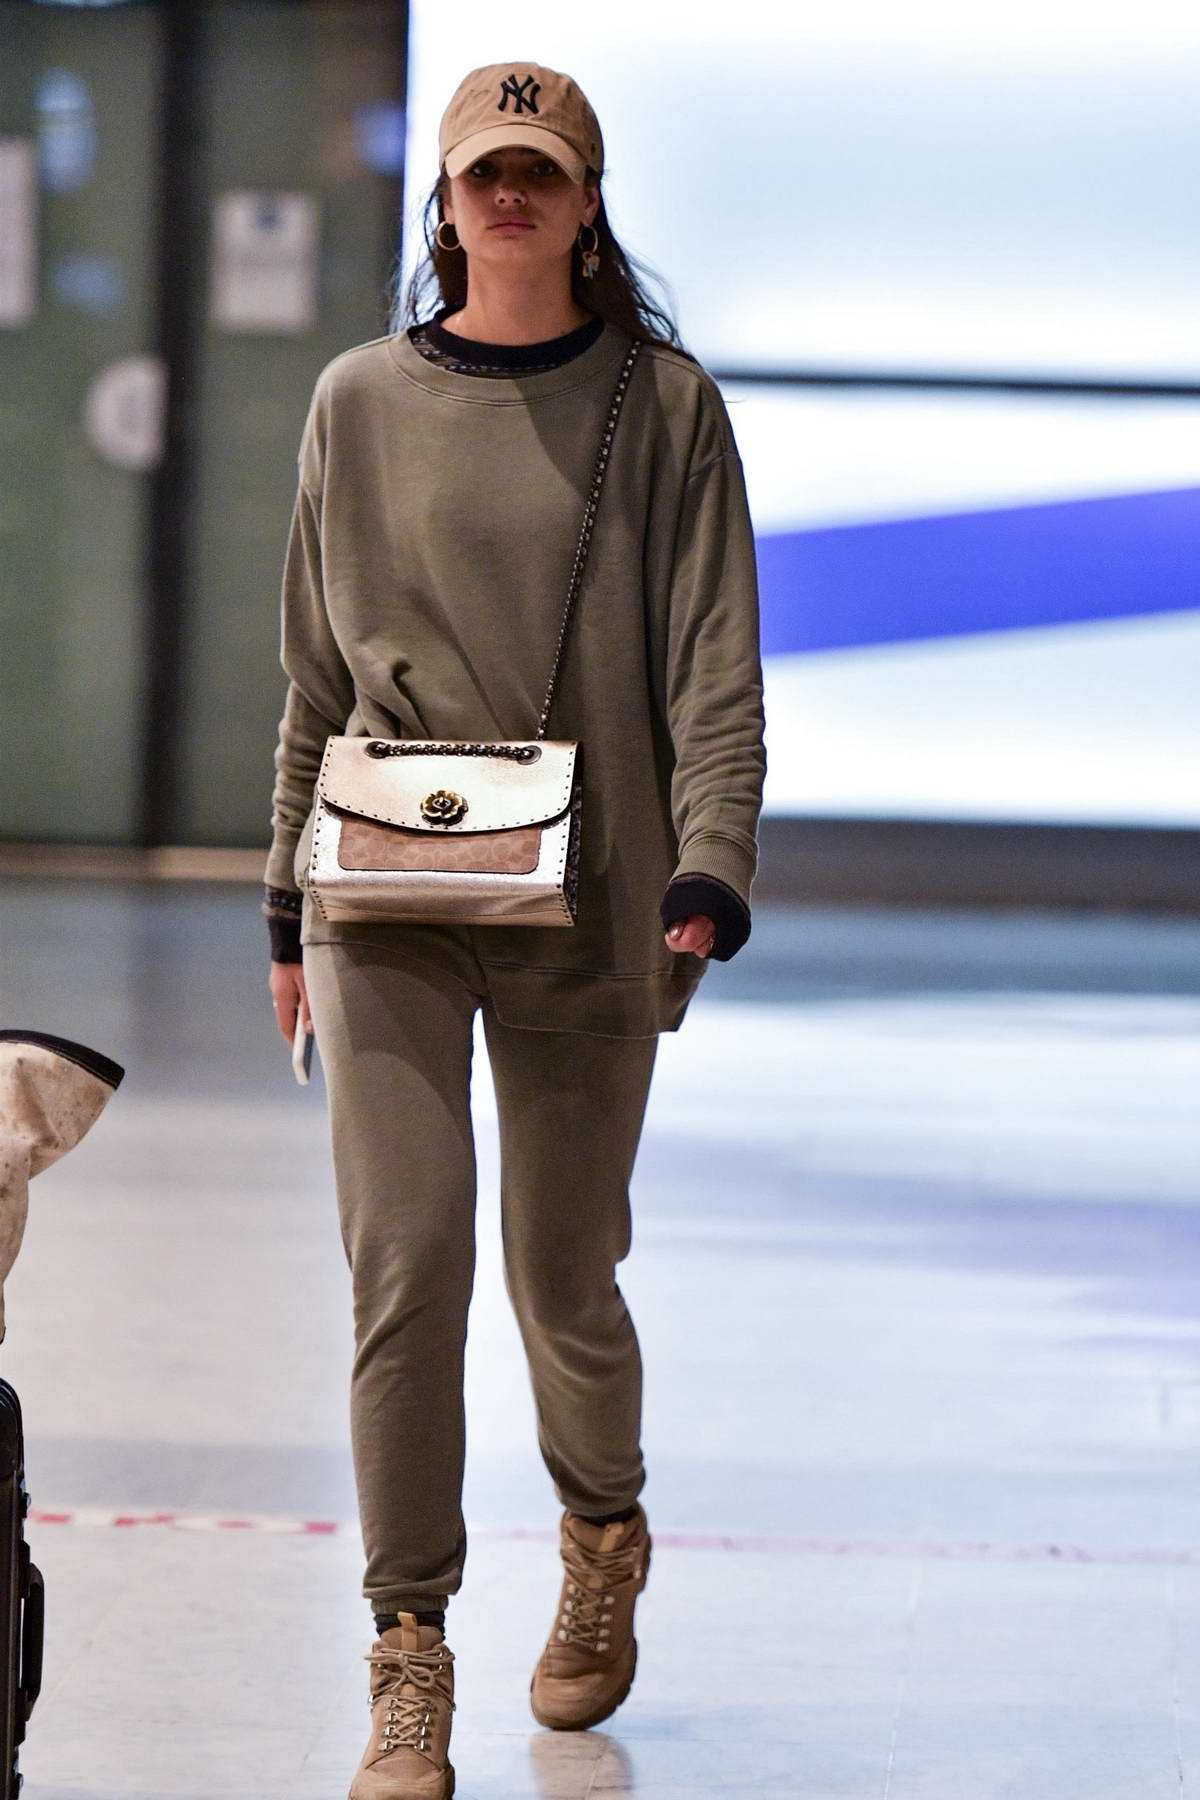 Taylor Hill keeps it casual as she arrives at Charles de Gaulle airport in Paris, France